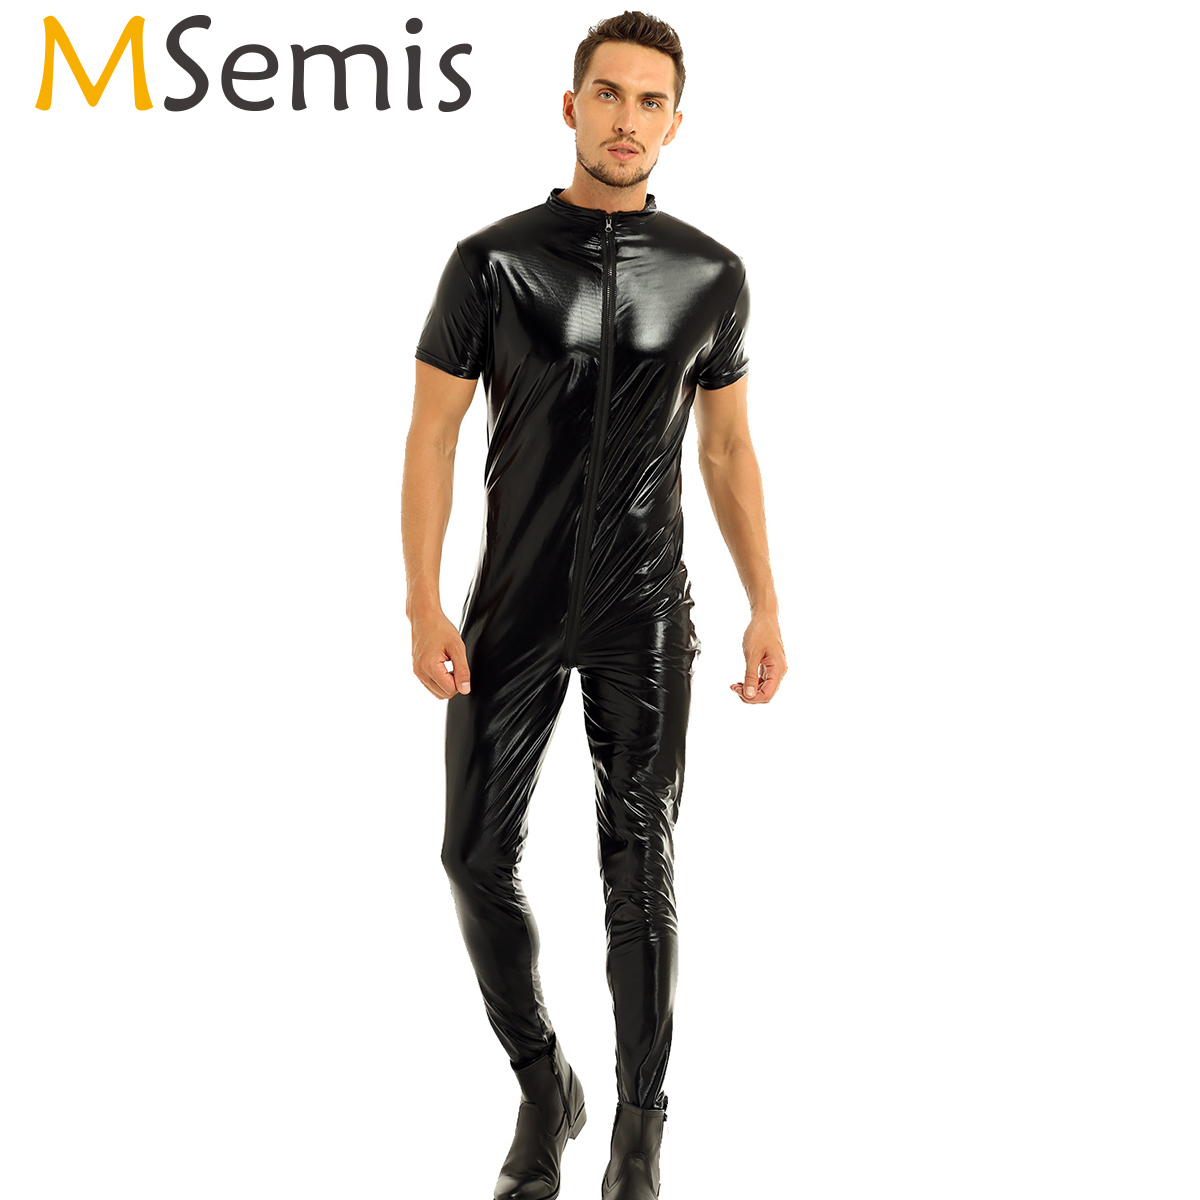 Mens Body Suit Thong Leotard Bodystocking Faux Leather Bodysuit Short Sleeves Zipper -1887